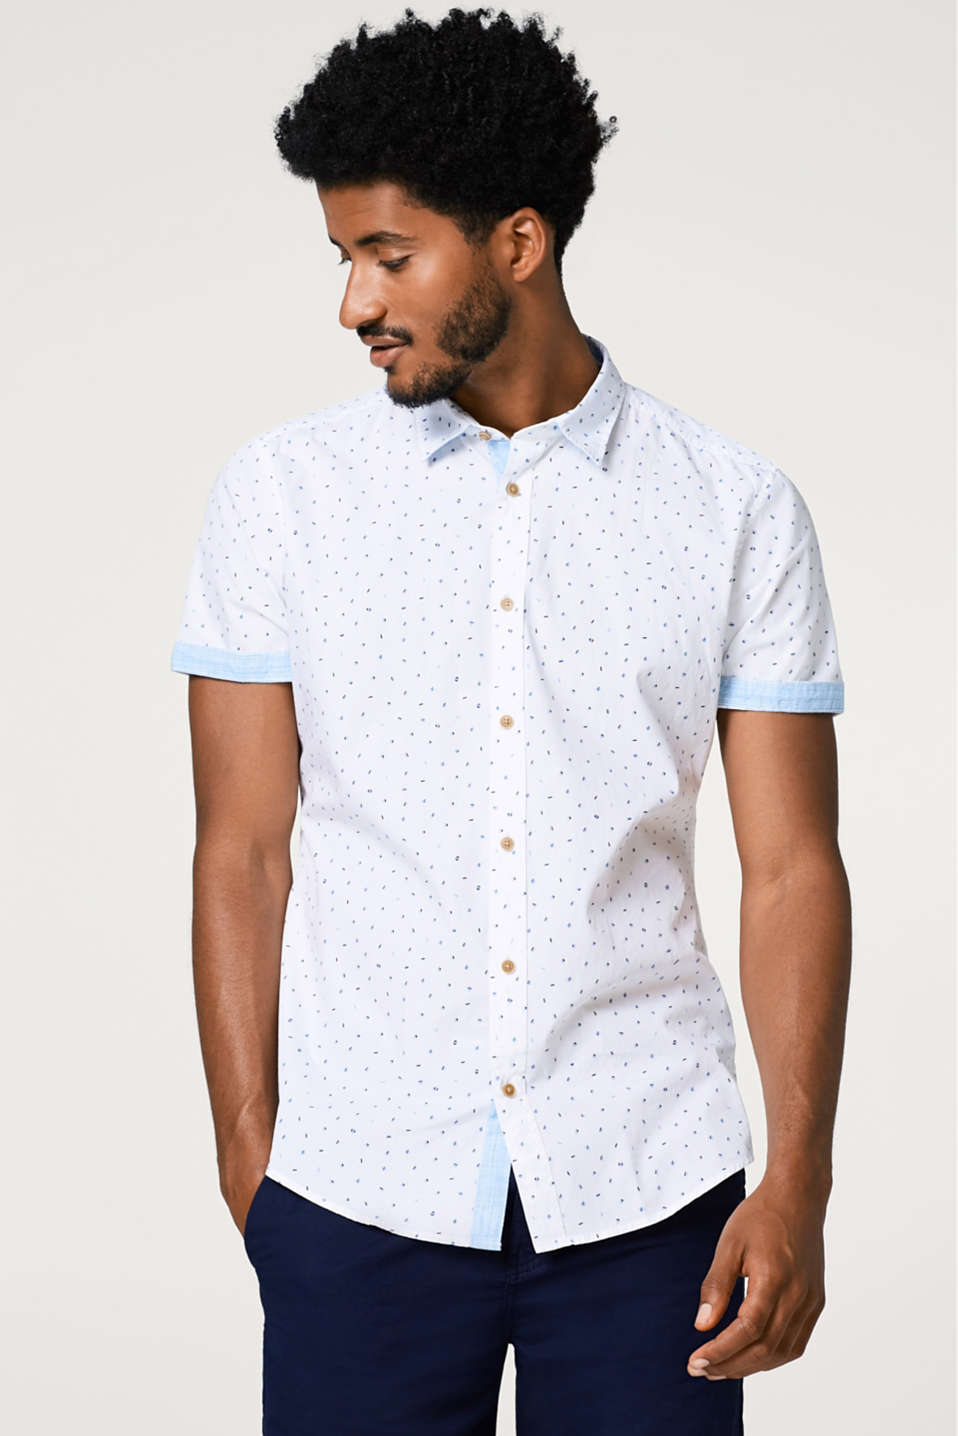 Esprit - Short sleeve shirt with a geometric print, in cotton